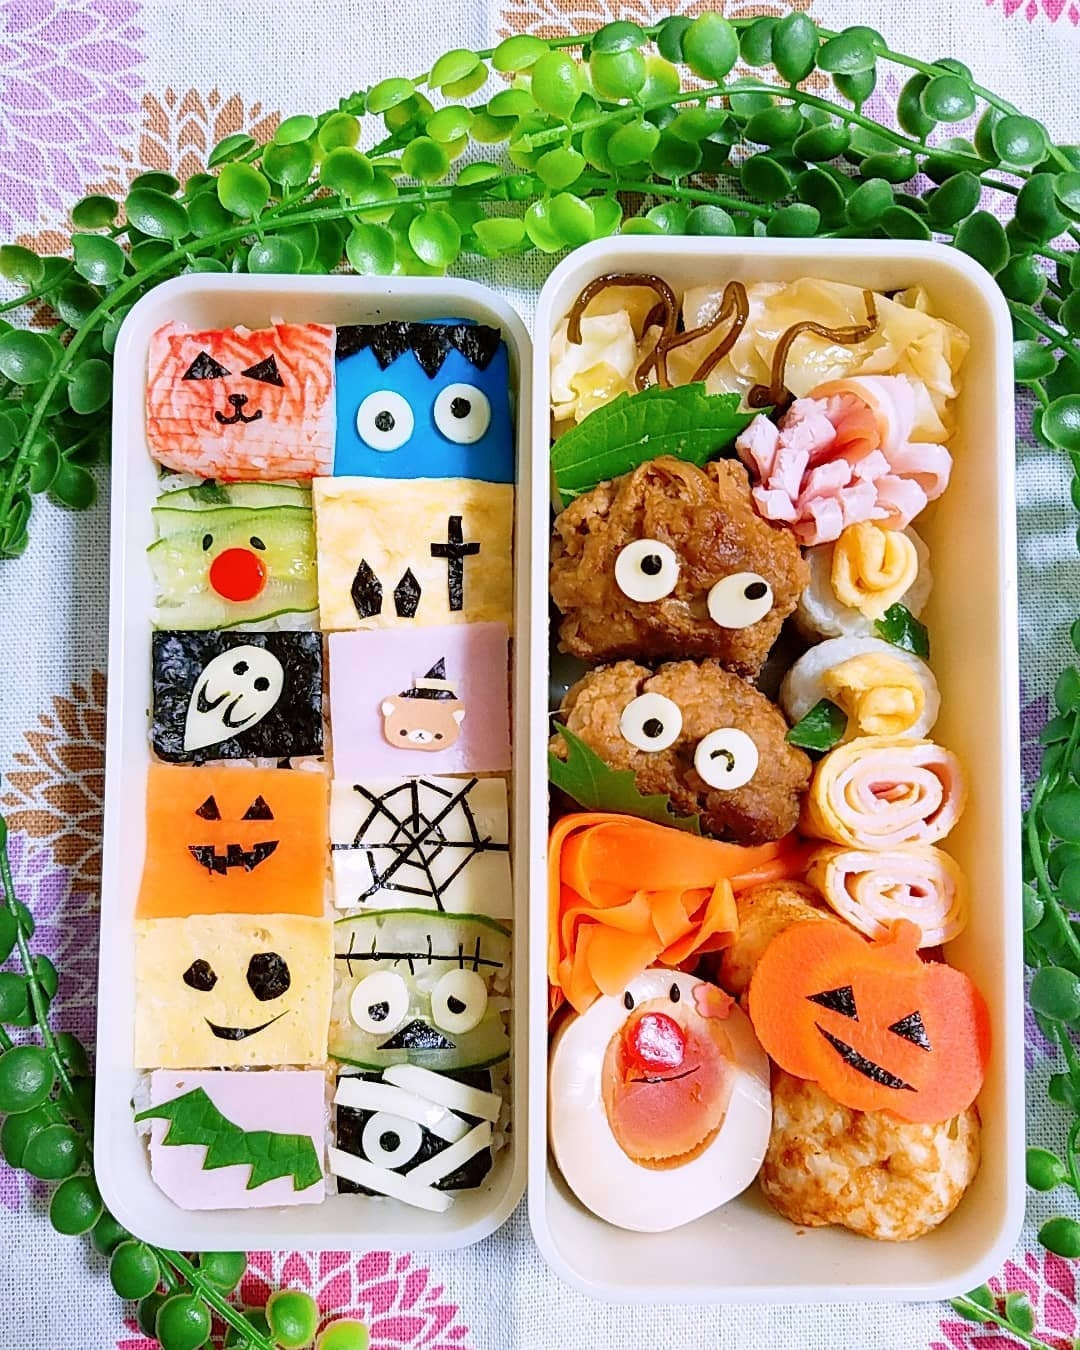 Adorable Halloween Bento Box